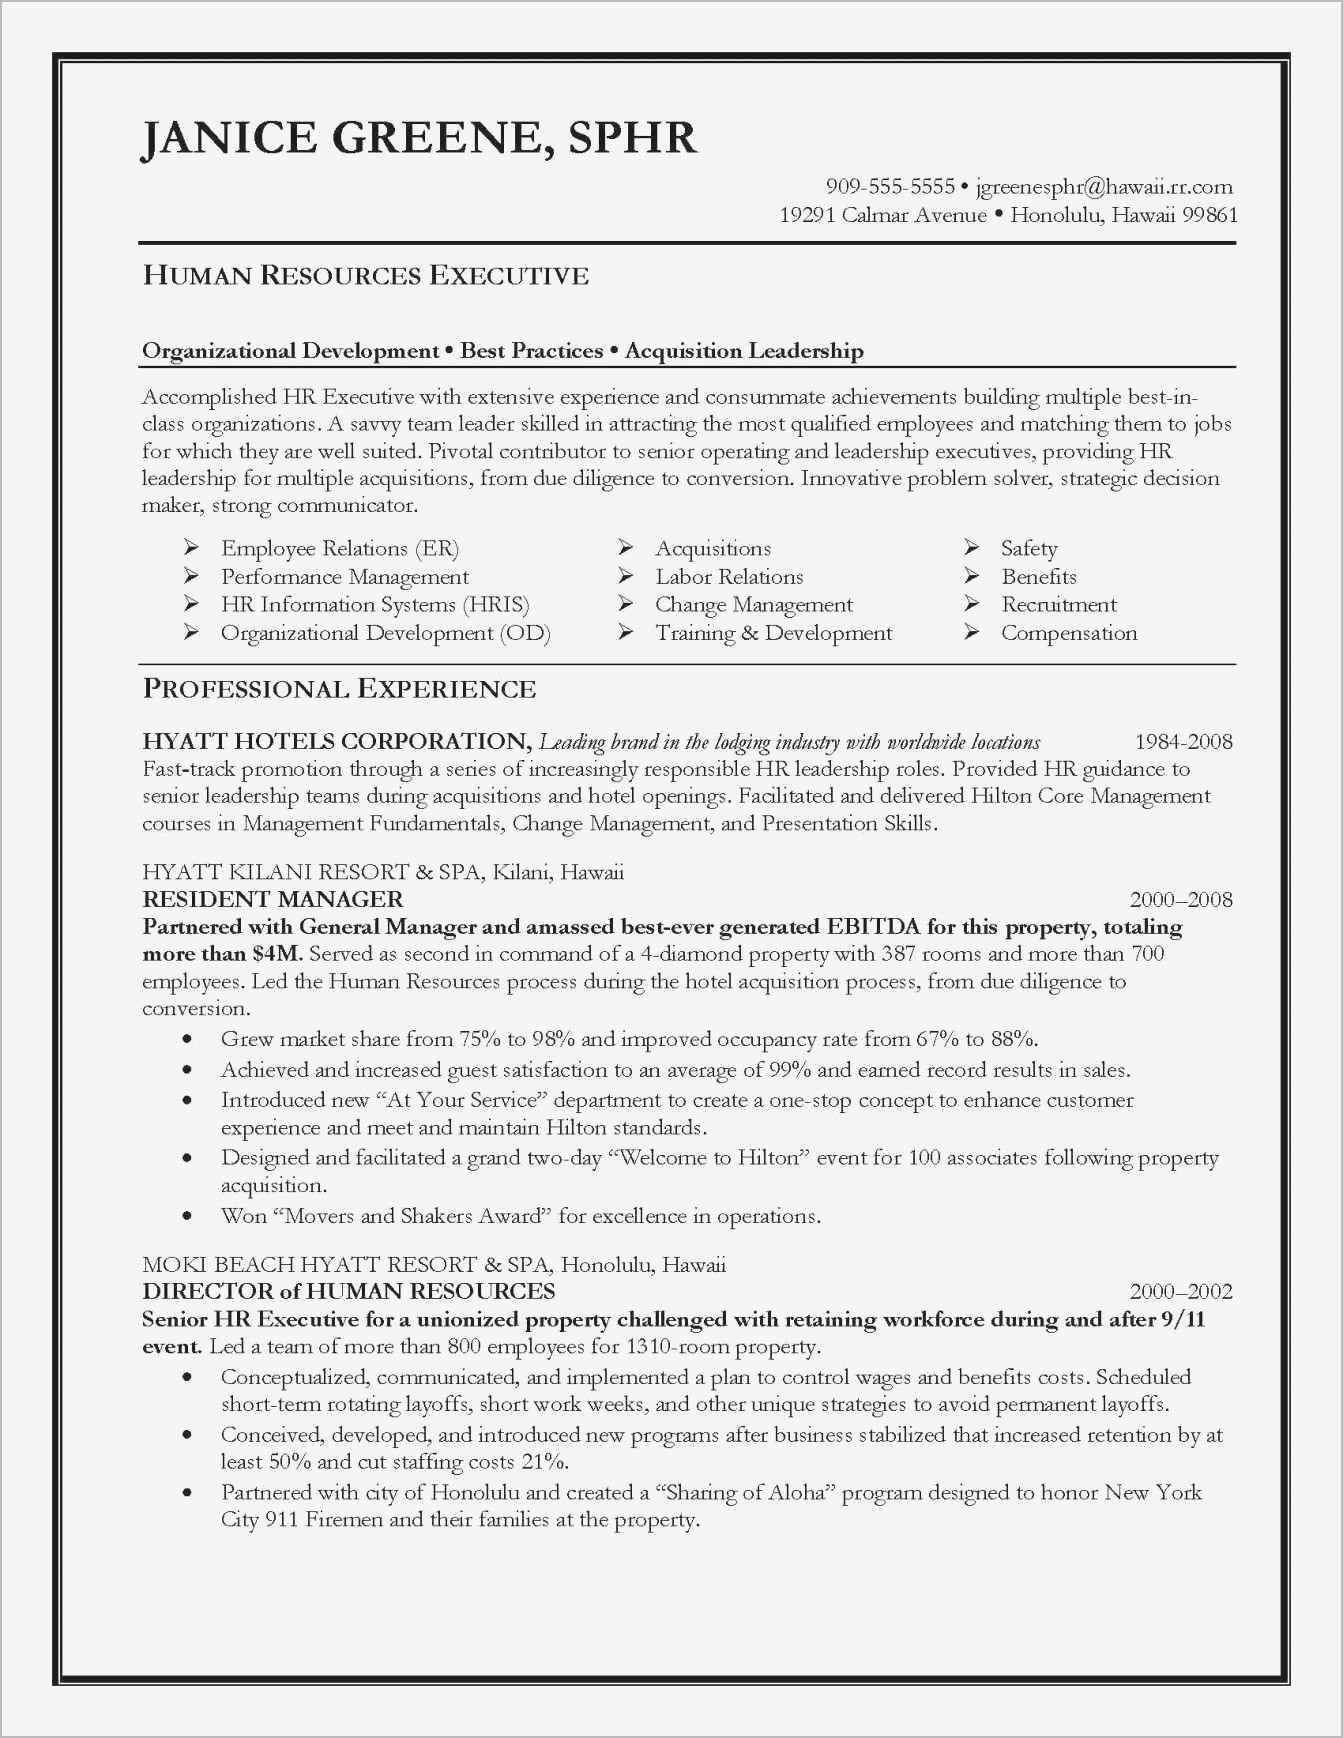 Web Developer Summary Resume - 25 Web Developer Summary Resume